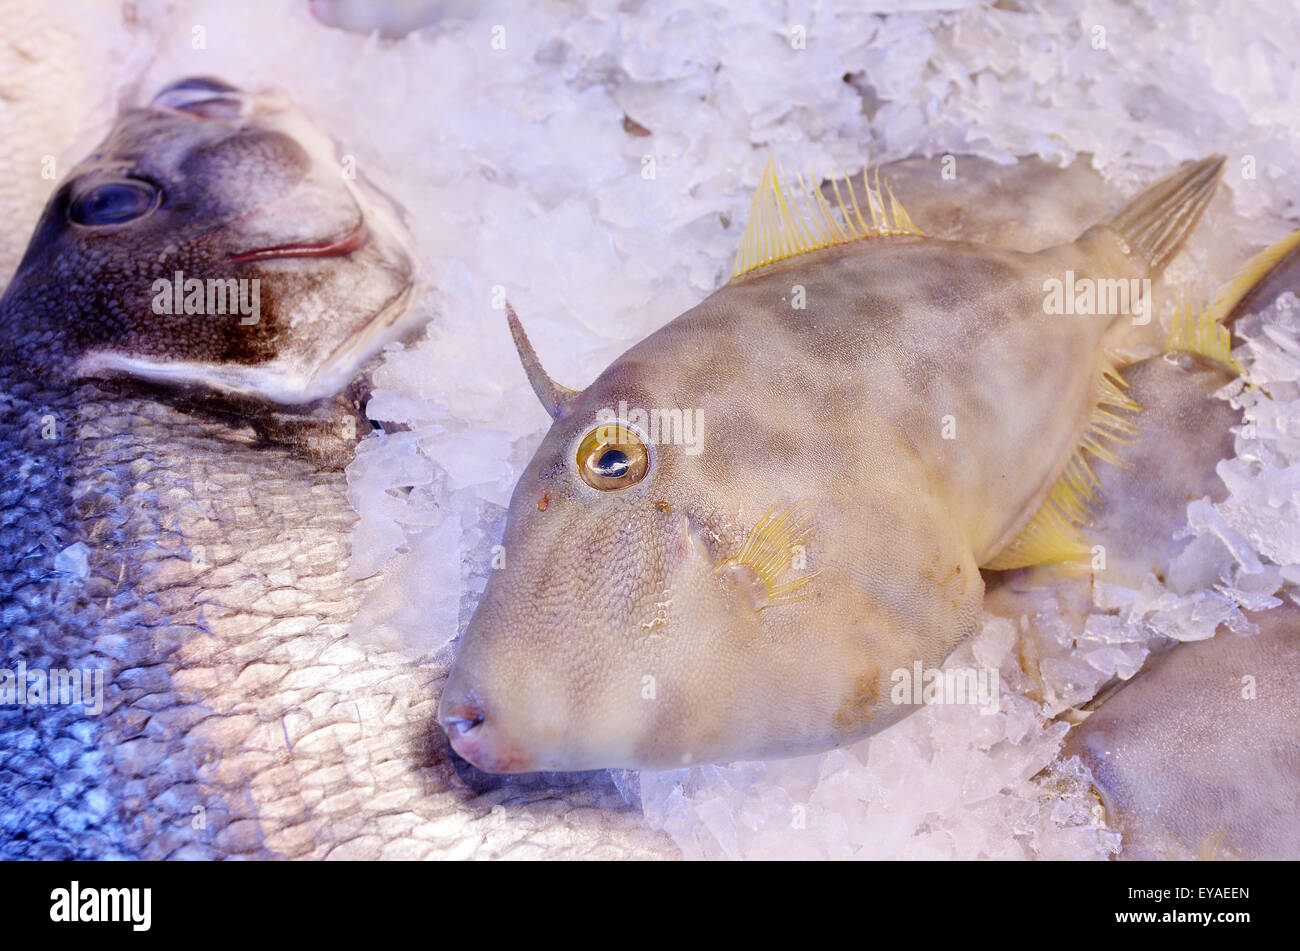 Leatherjacket fish Parika scaber ) on display in fish market.Food background texture. Stock Photo